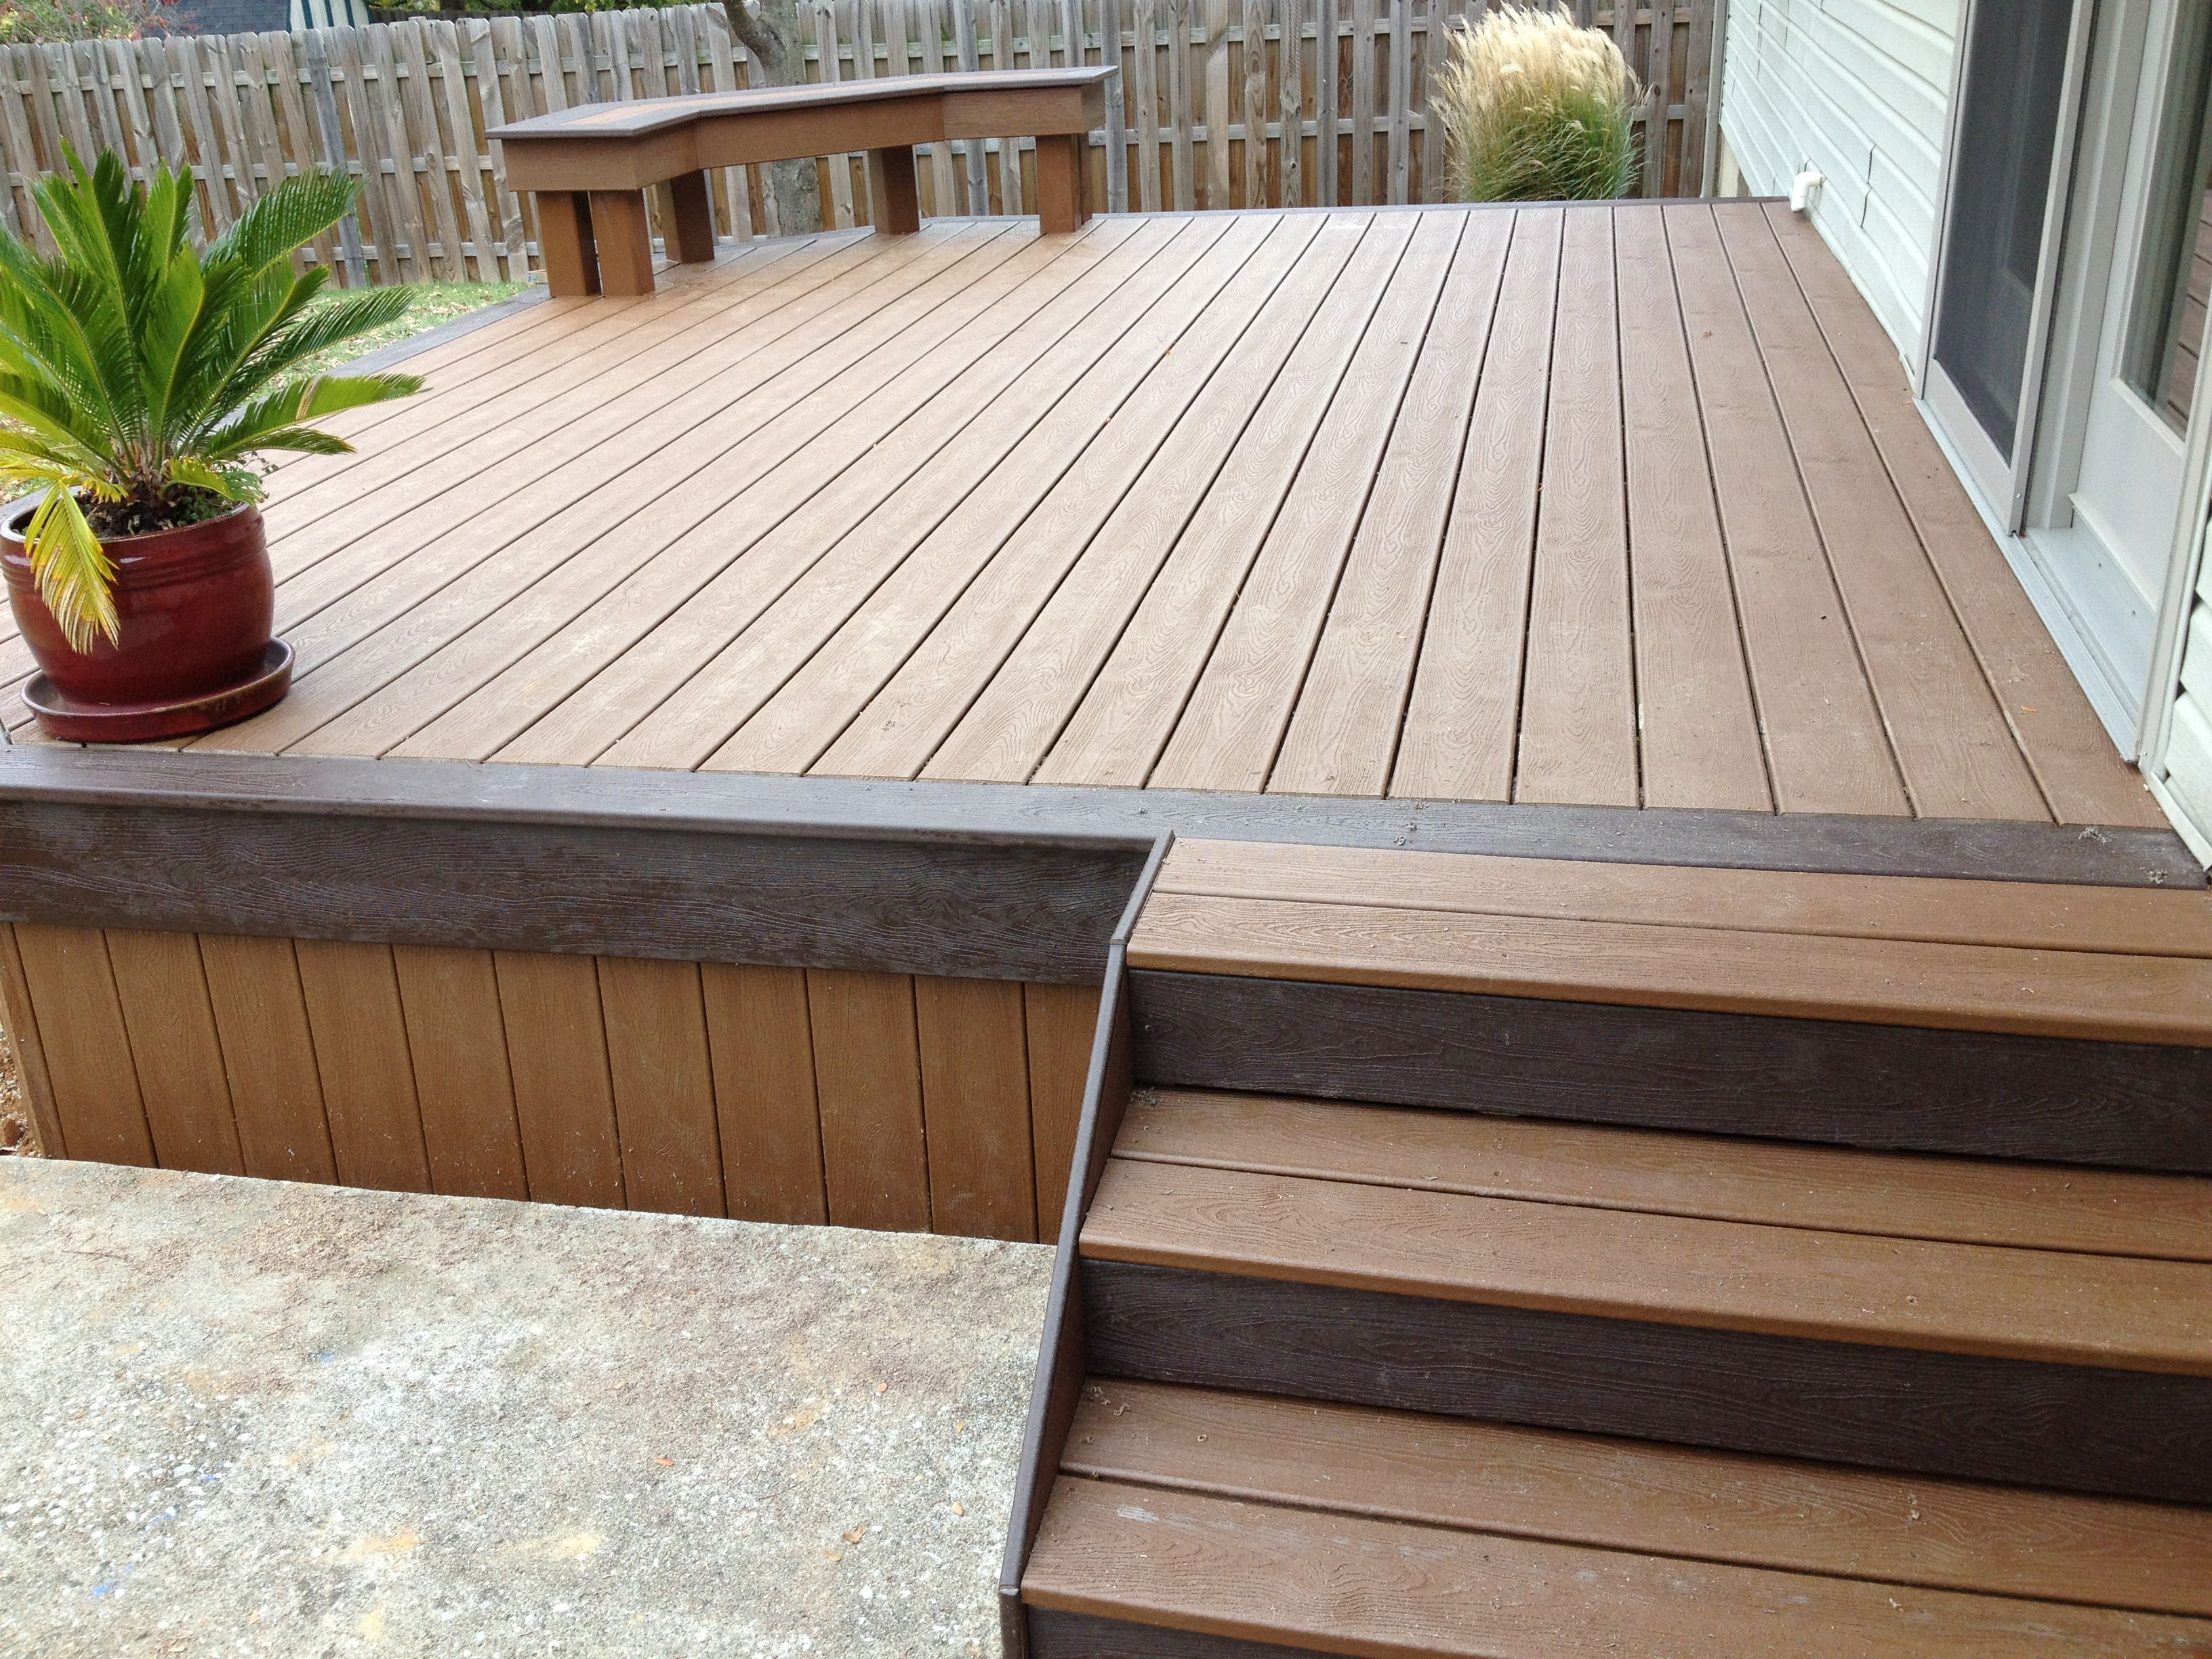 Trex Transcends Decking With A Transferable 25 Year Waranty And Tigerclaw Stainless Steel Hidden Fasteners Deck Design Deck Pergola Plans Design